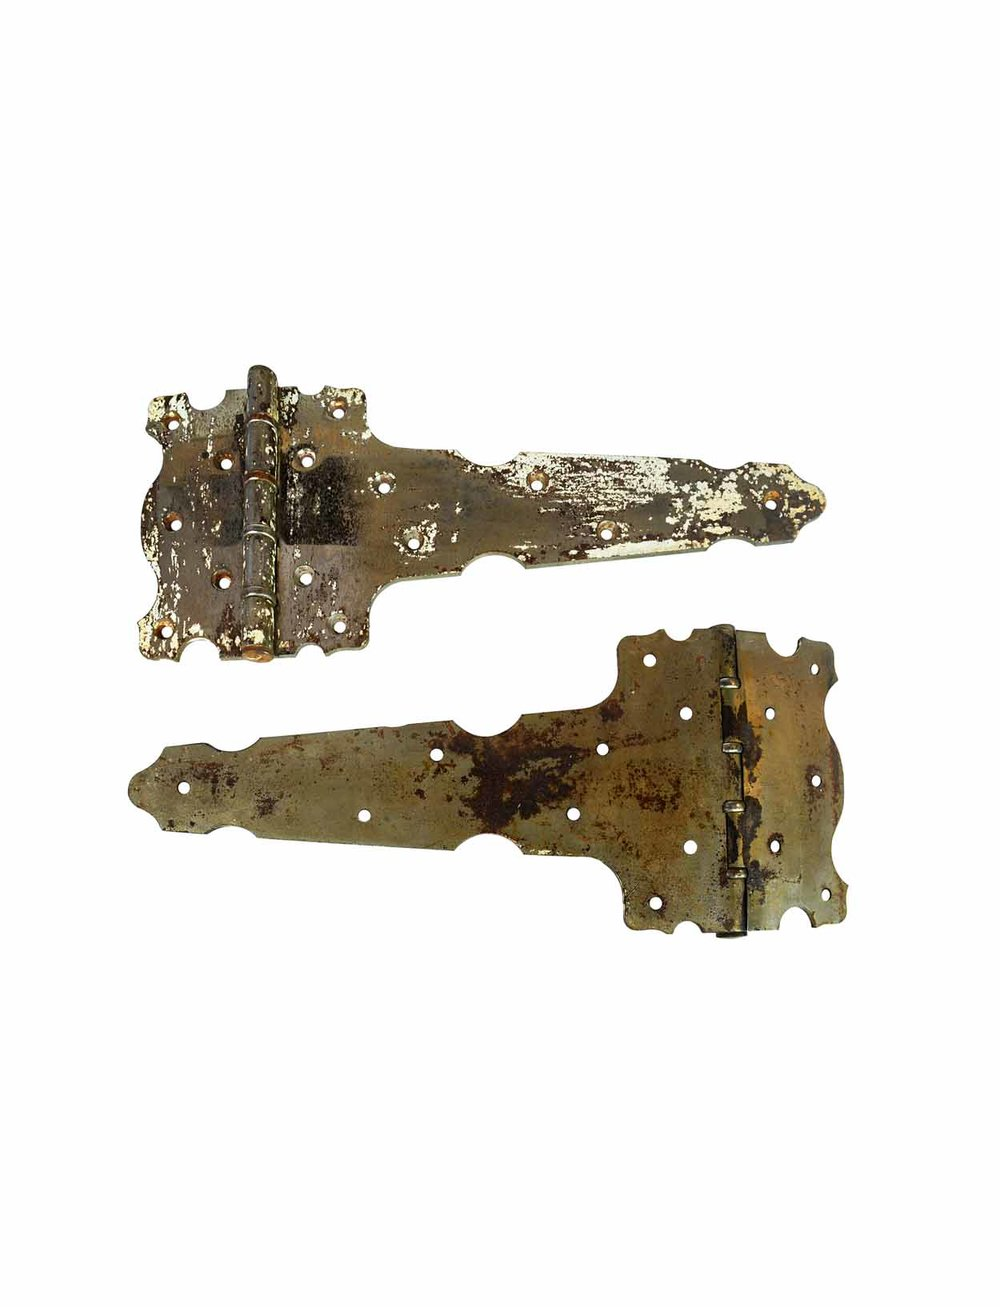 EXTRA LARGE CHROME PLATED STRAP HINGES AA# H20213   1 pair available $145.00 for pair